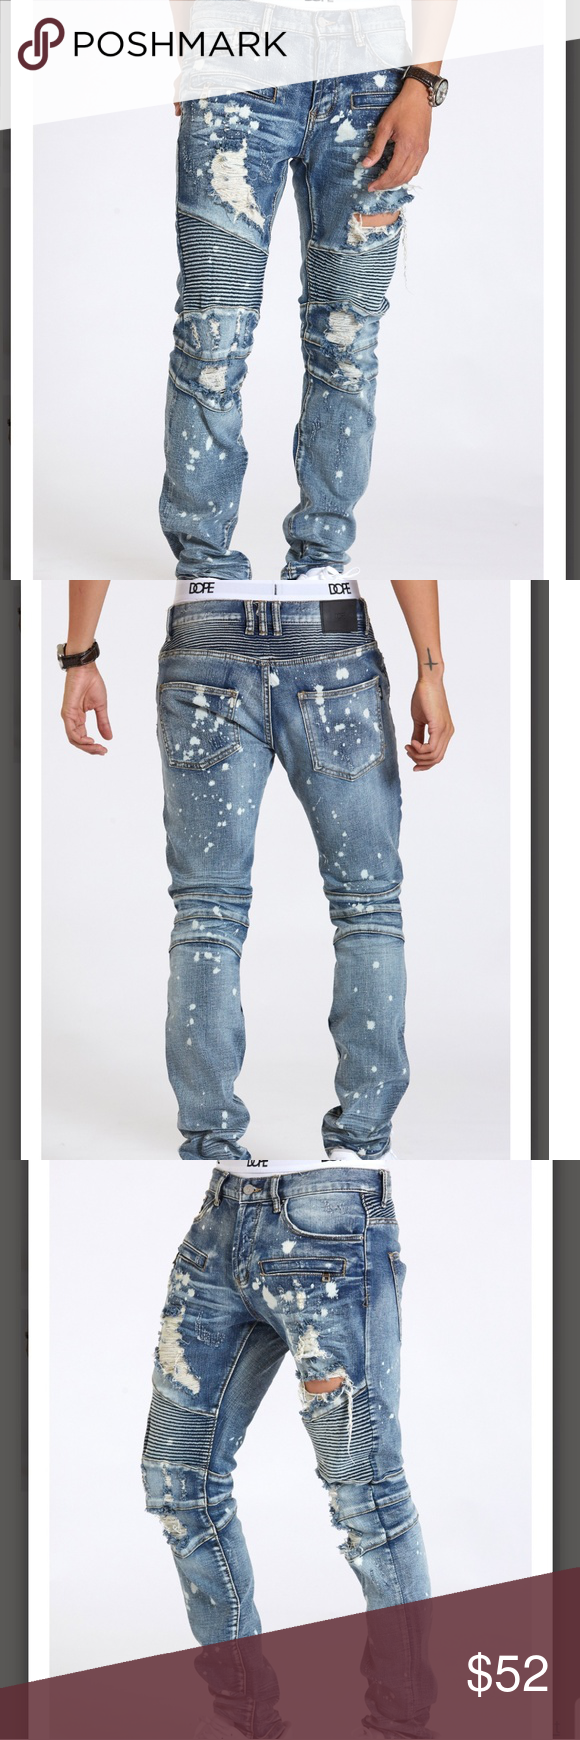 30ea4dbf Spotted while shopping on Poshmark: 🔥 DOPE 🔥Slim Fit Moto Jeans!  #poshmark #fashion #shopping #style #DOPE #Other